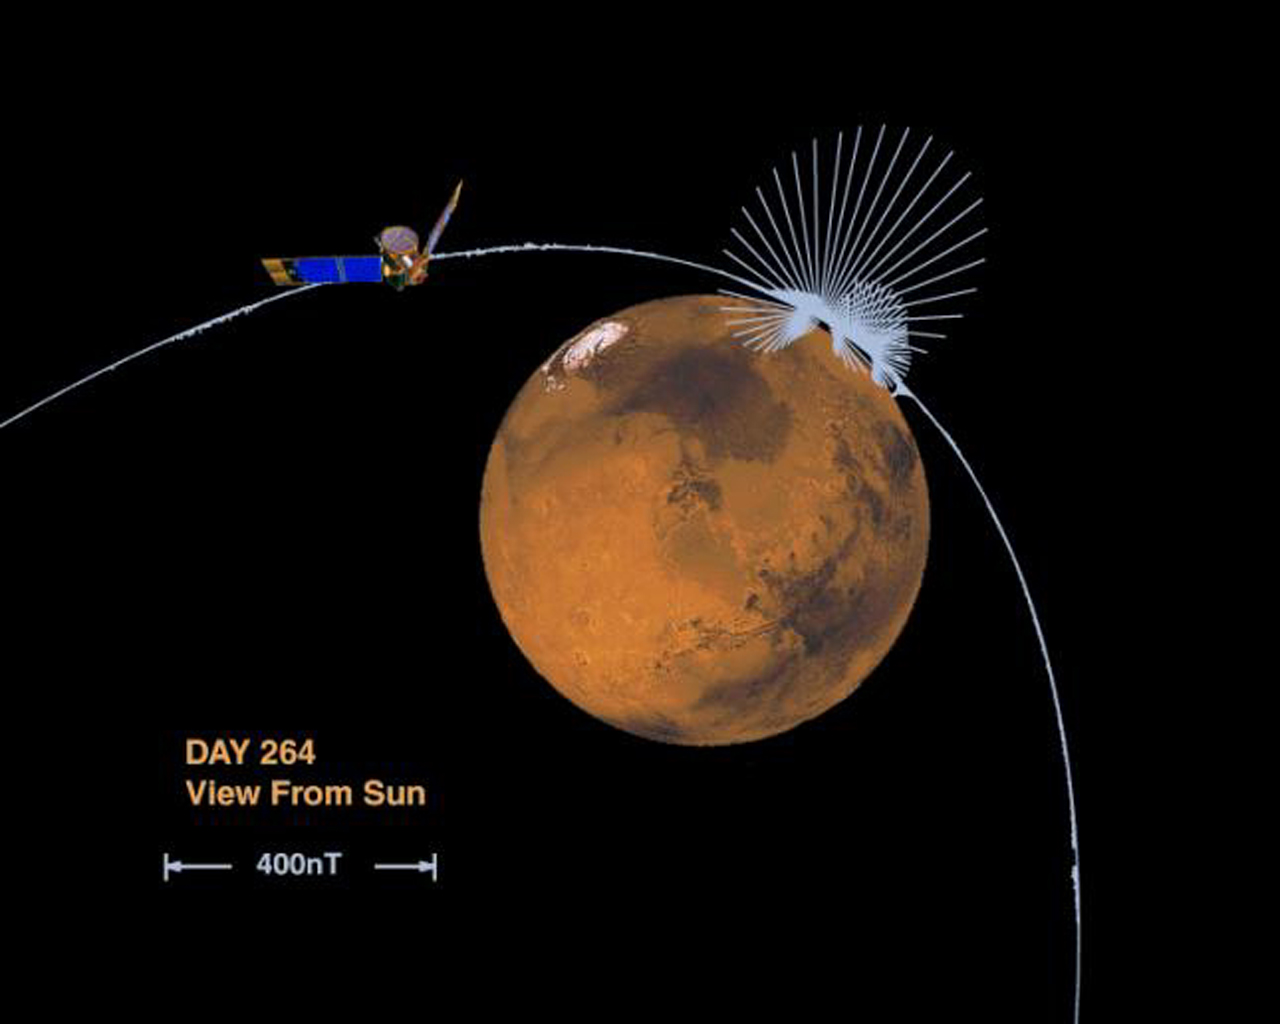 This image shows the orientation and magnitude of the magnetic field measured by the magnetometer onboard NASA's Mars Global Surveyor as the spacecraft sped over the surface of Mars during an early aerobraking pass.